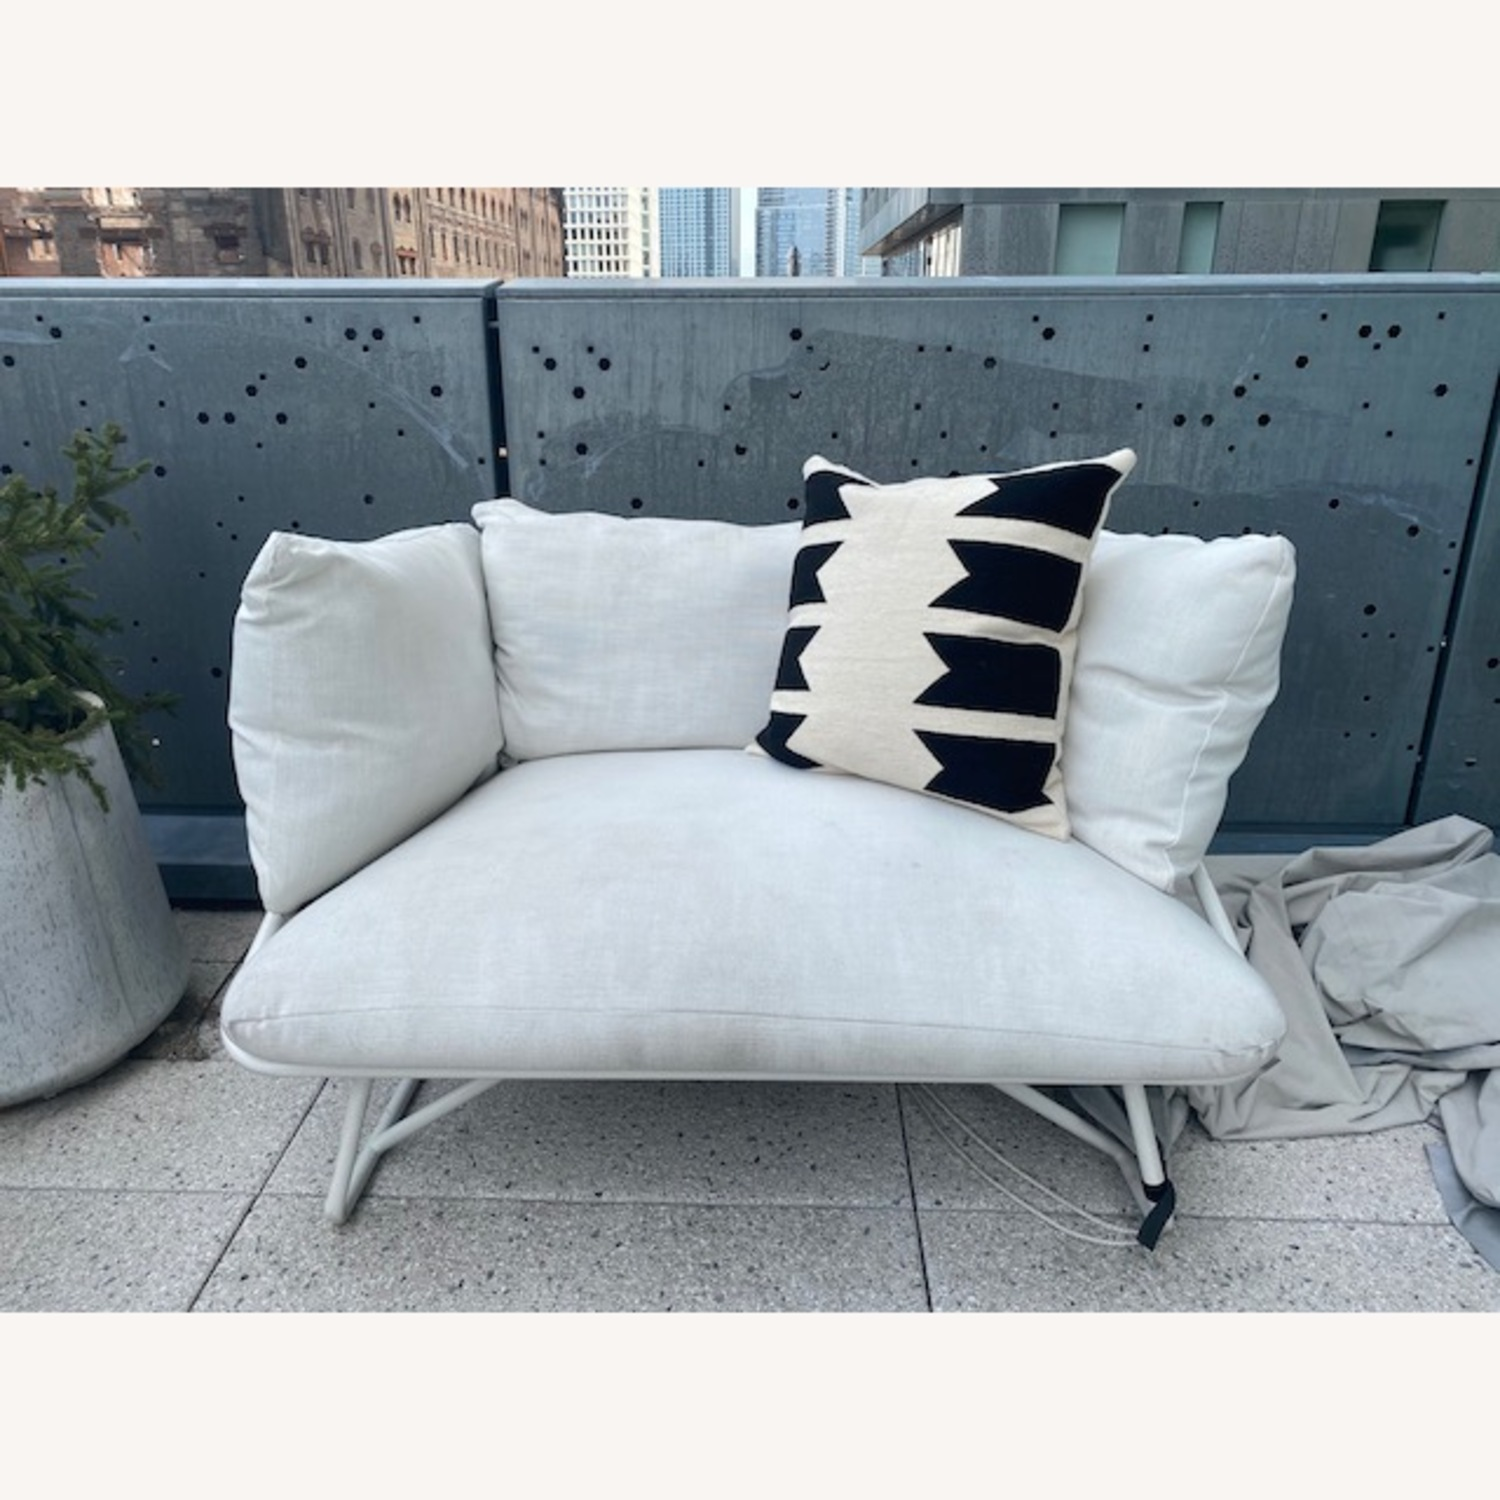 CB2 Fred Segal Outdoor Set - image-4